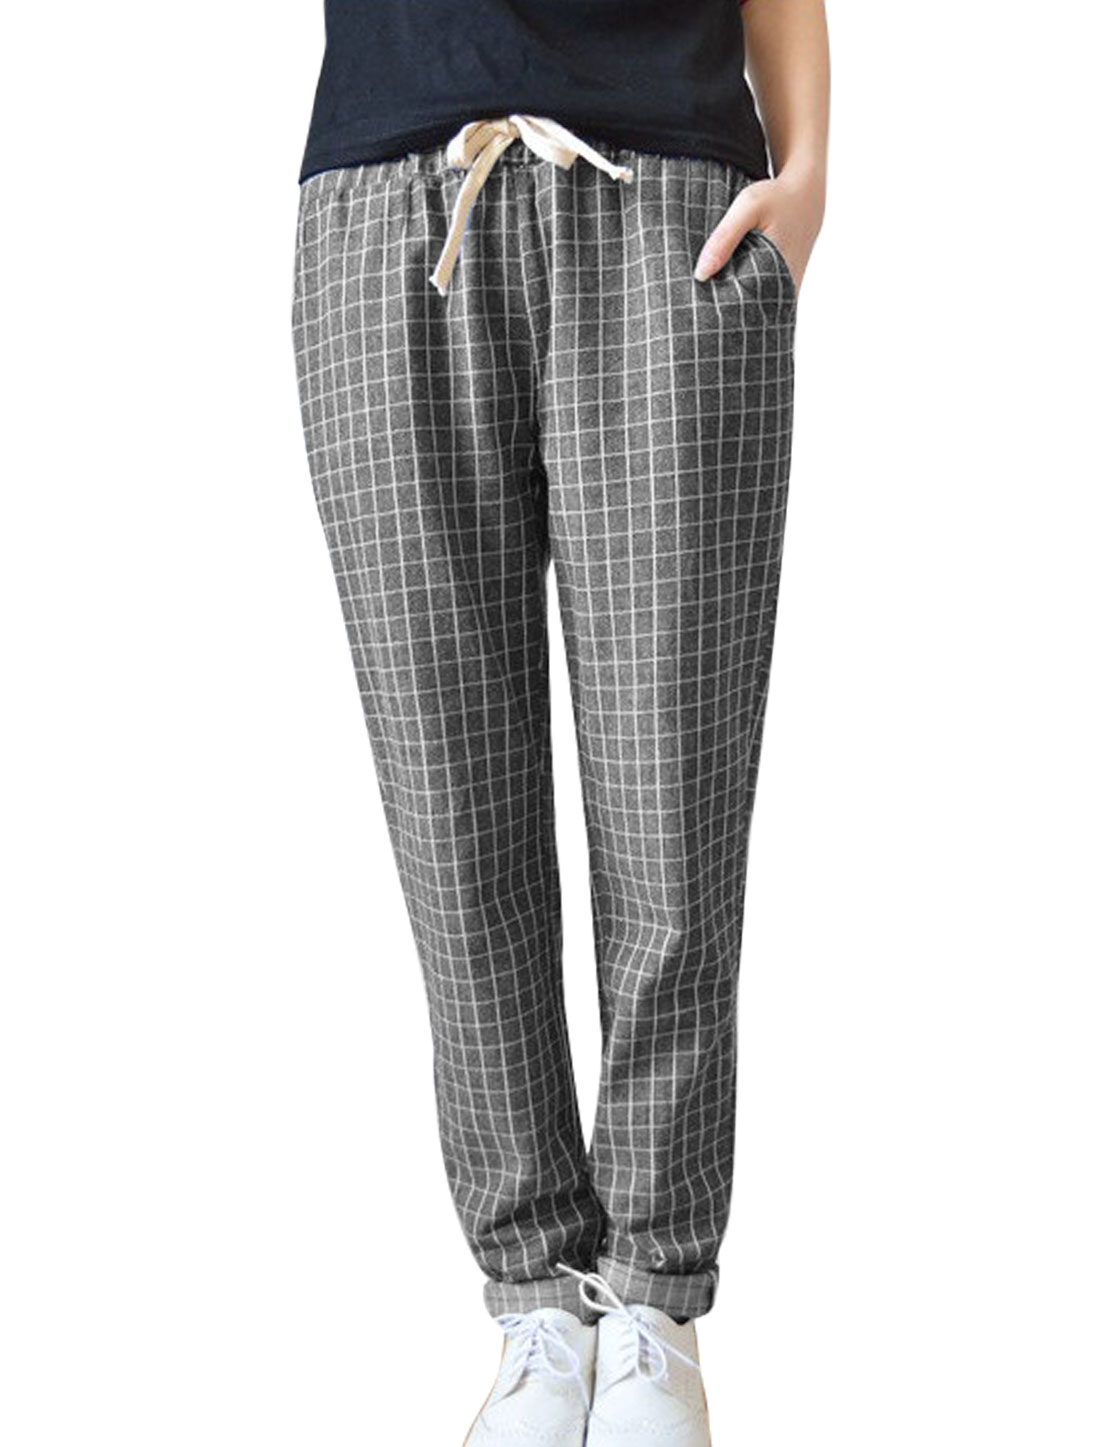 Lady Elastic Drawstring Waist Plaids Pattern Casual Cropped Pants Dark Gray XS